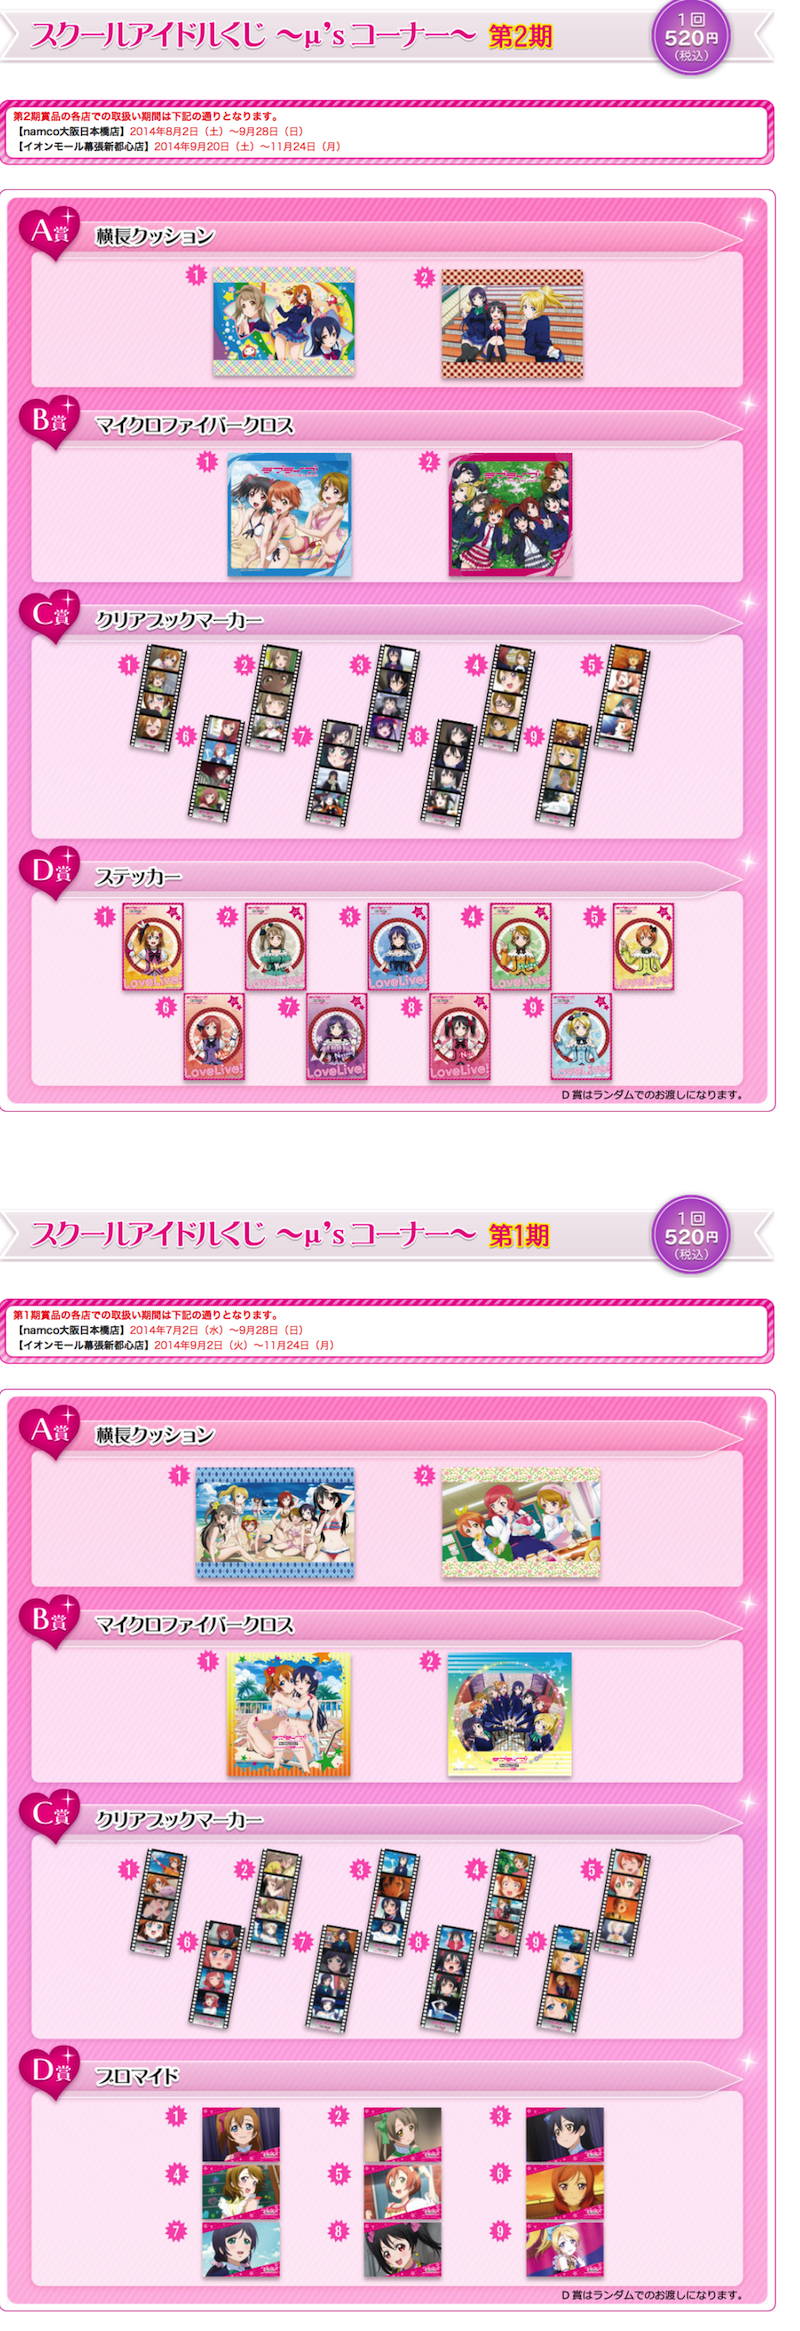 screencapture-www-namco-co-jp-chara_shop-lovelive-kuji-php